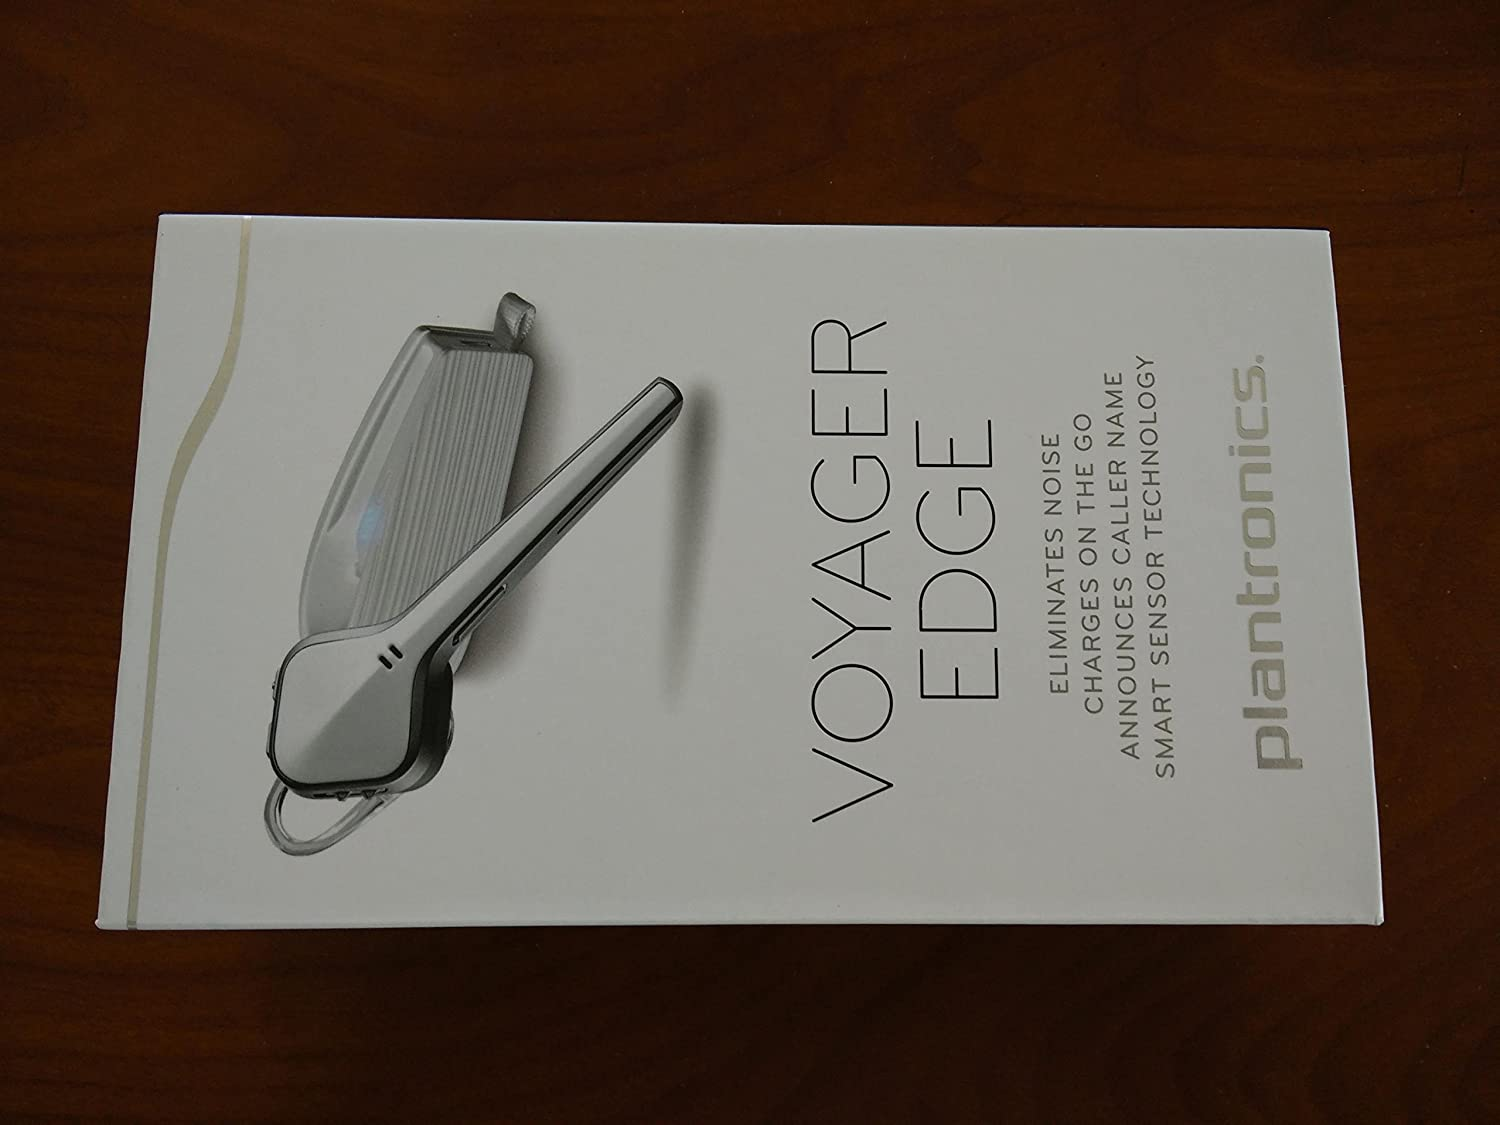 ef13c981346 Amazon.com: Plantronics Voyager Edge Wireless Bluetooth Headset with  Charging Case - Carbon Black: Cell Phones & Accessories